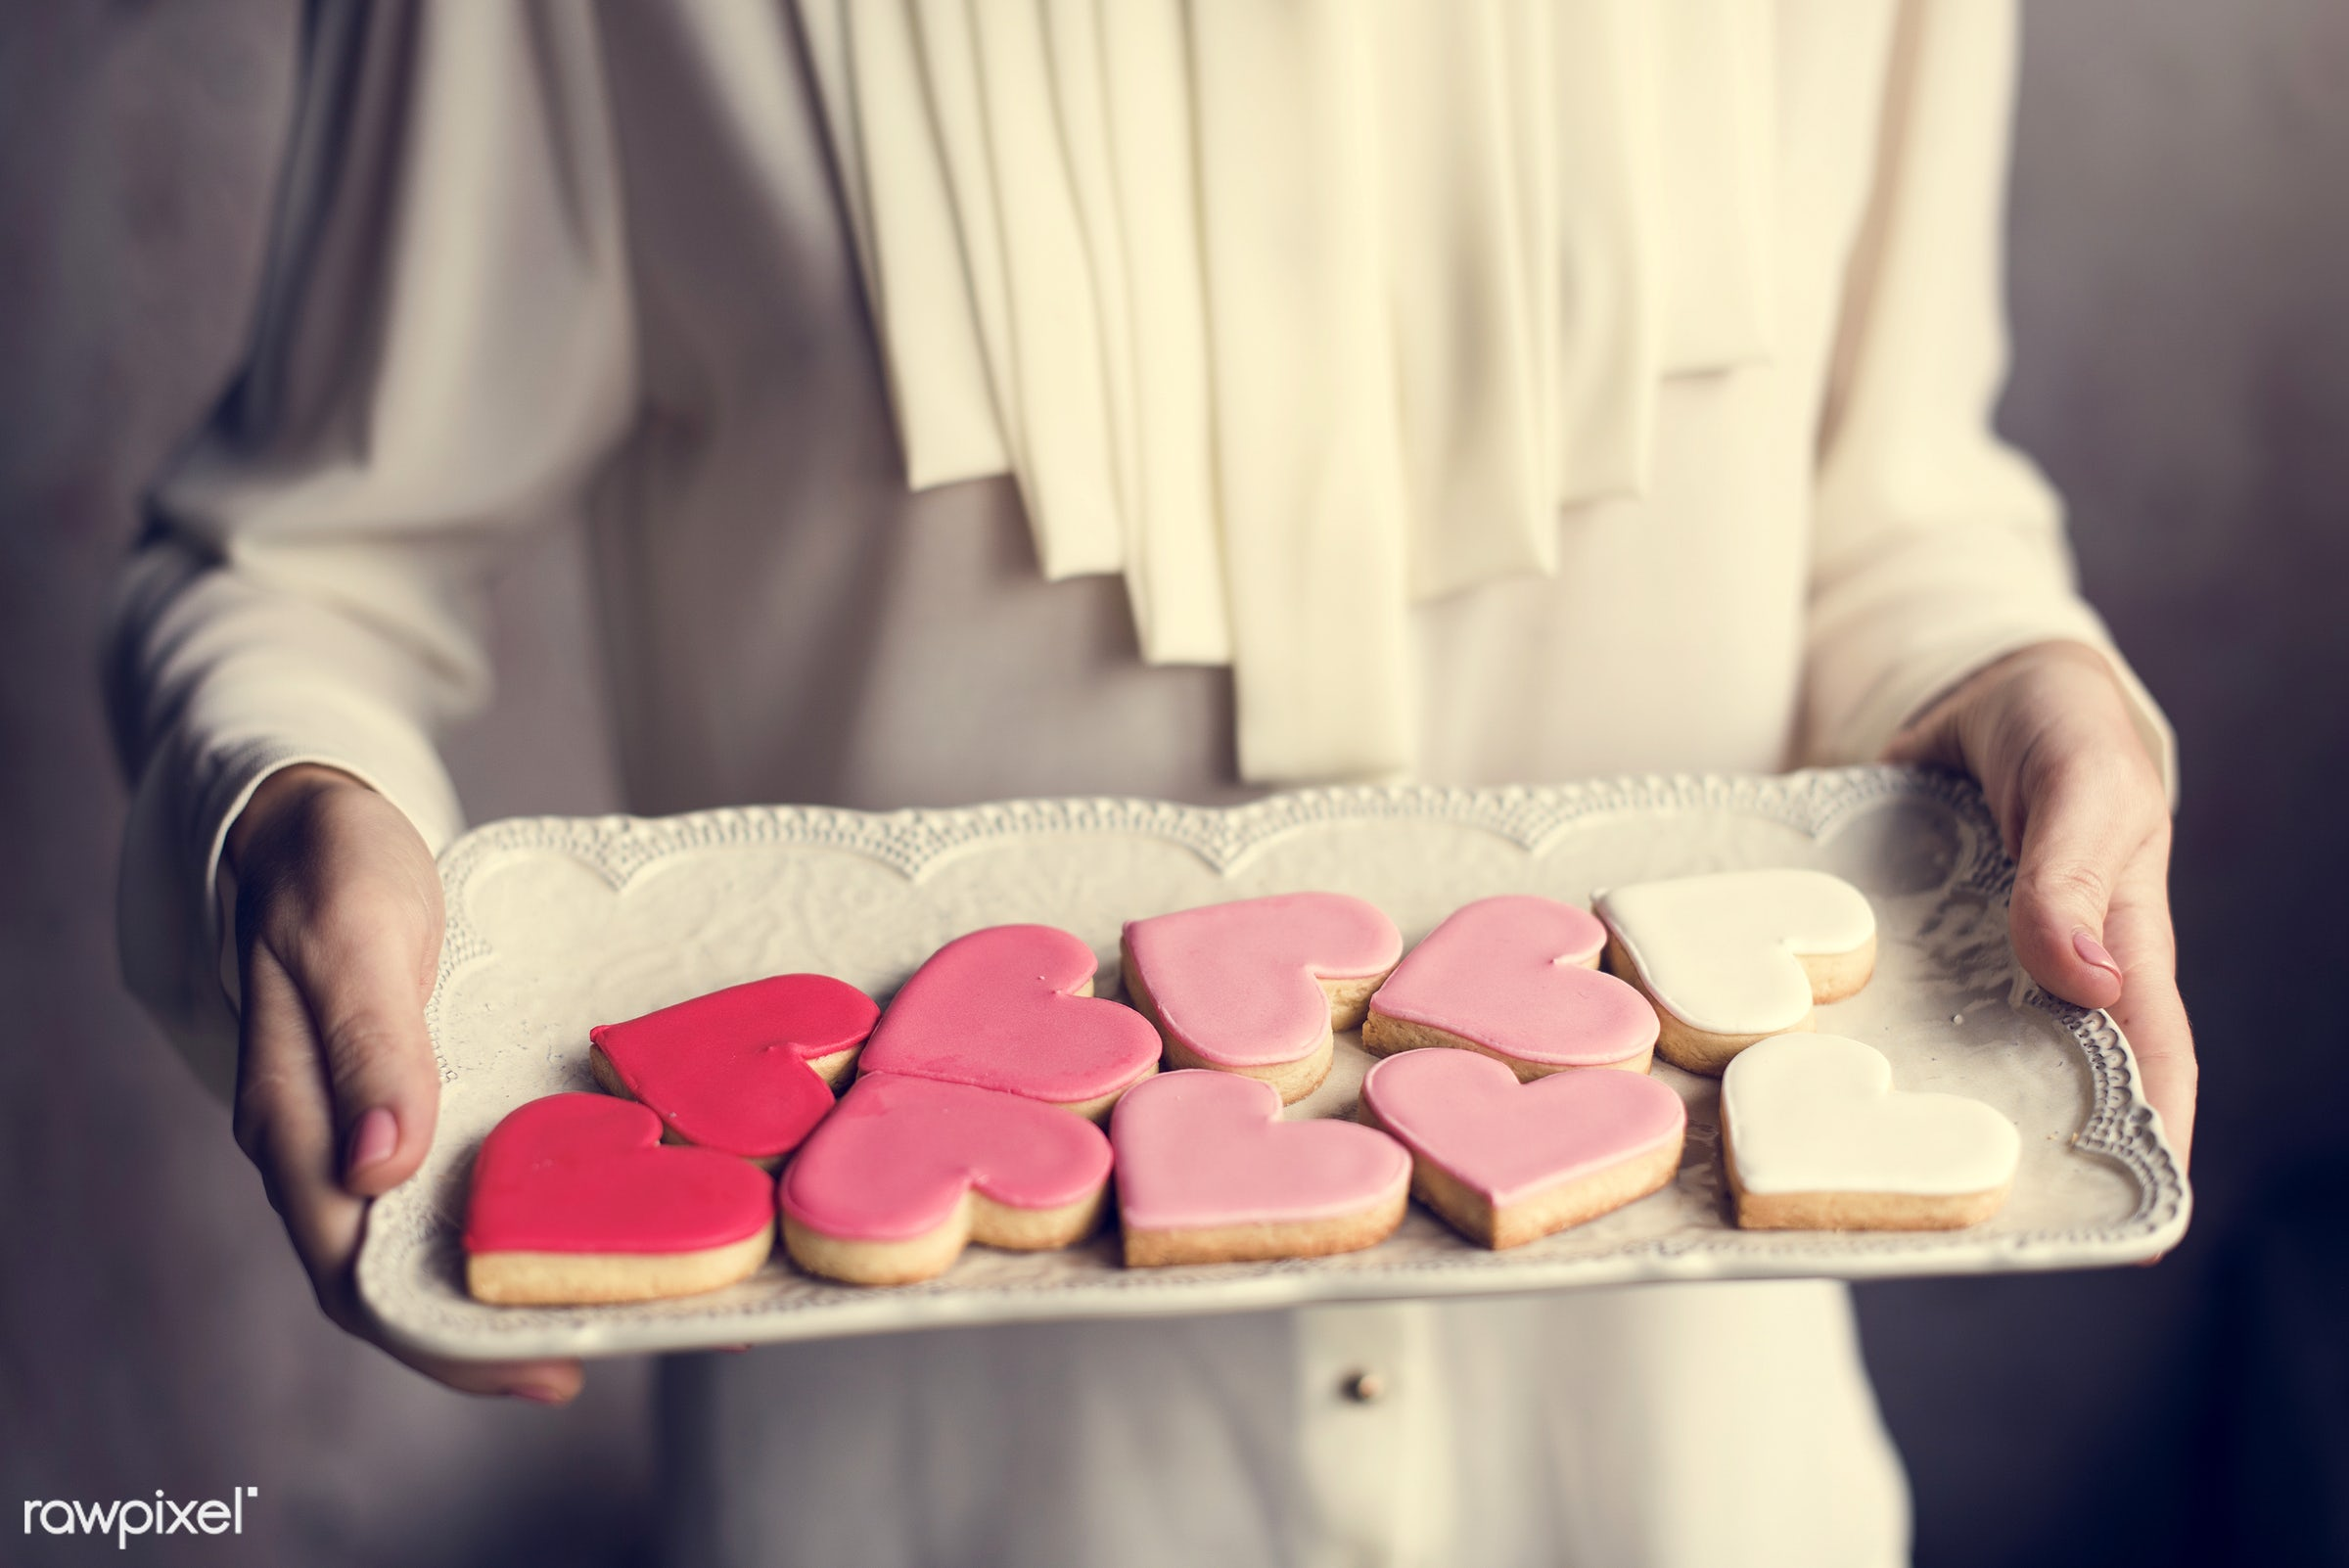 dish, person, holding, people, baked, love, girl, bakery, hands, woman, pink, cookies, carry, dessert, heart, romance, plate...